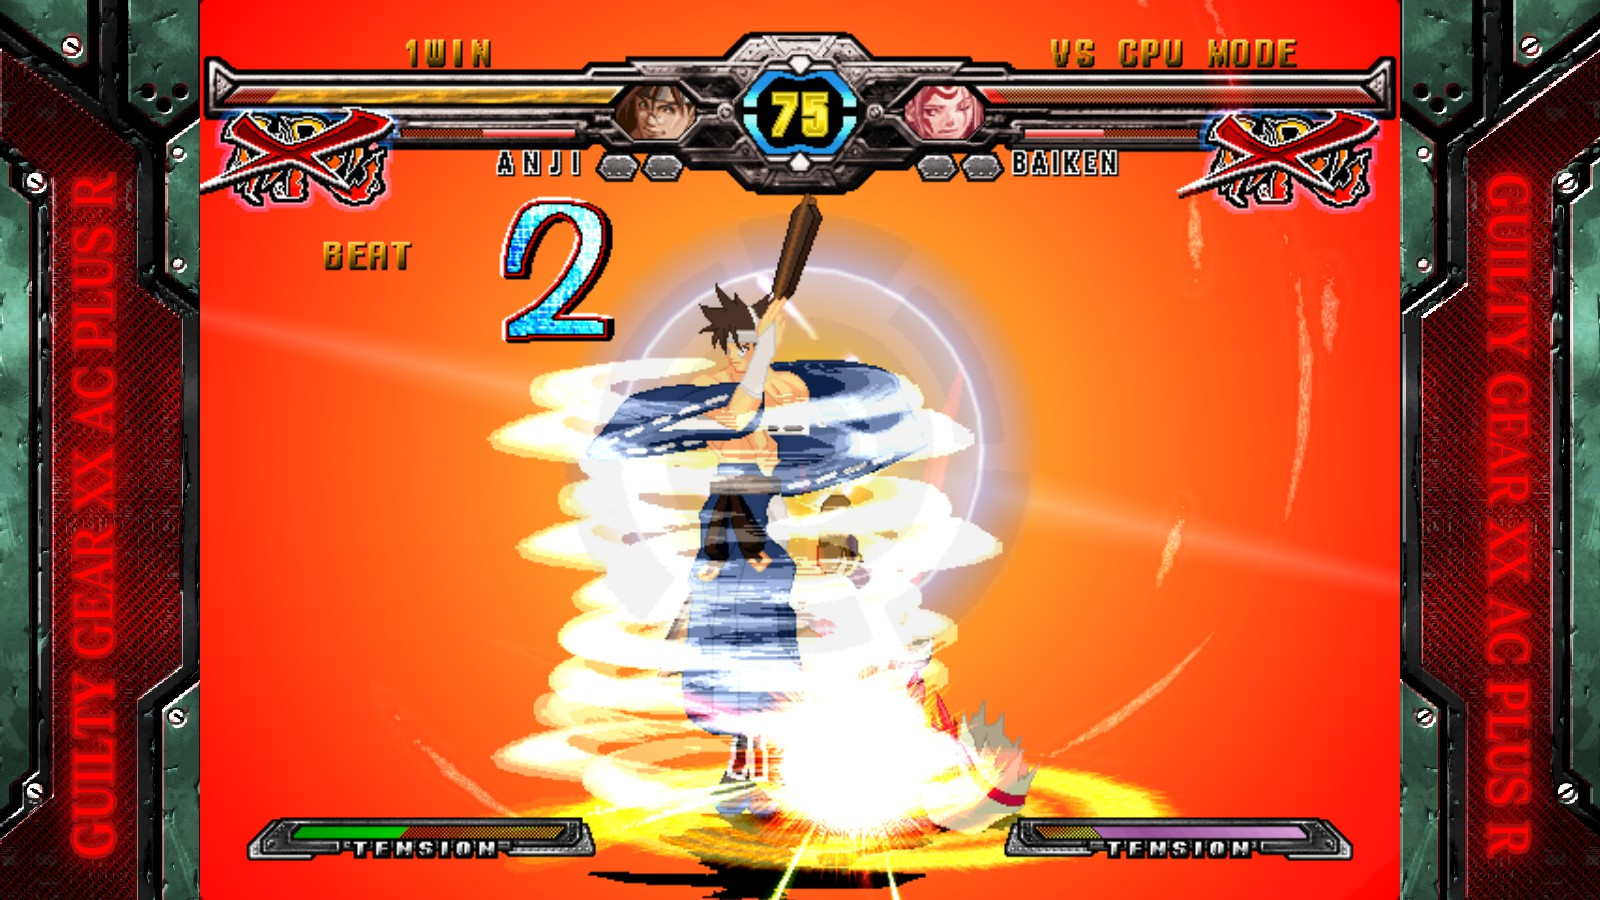 GUILTY GEAR XX ACCENT CORE PLUS R (Arc System Works) (ENG) [L] - RELOADED - Скриншот 3